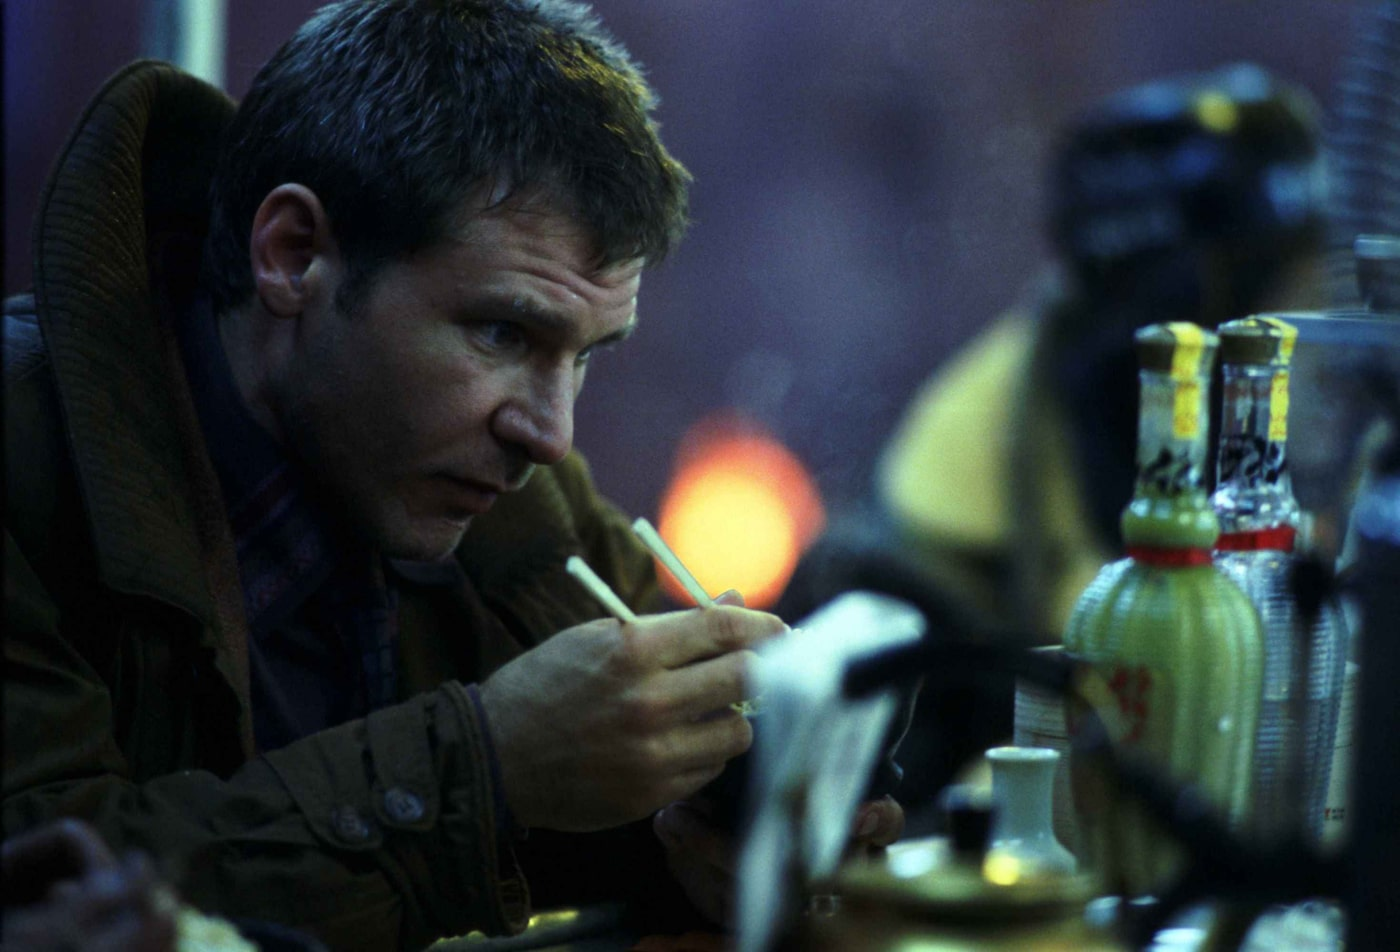 Blade Runner Deconstructed From A Geek's Perspective